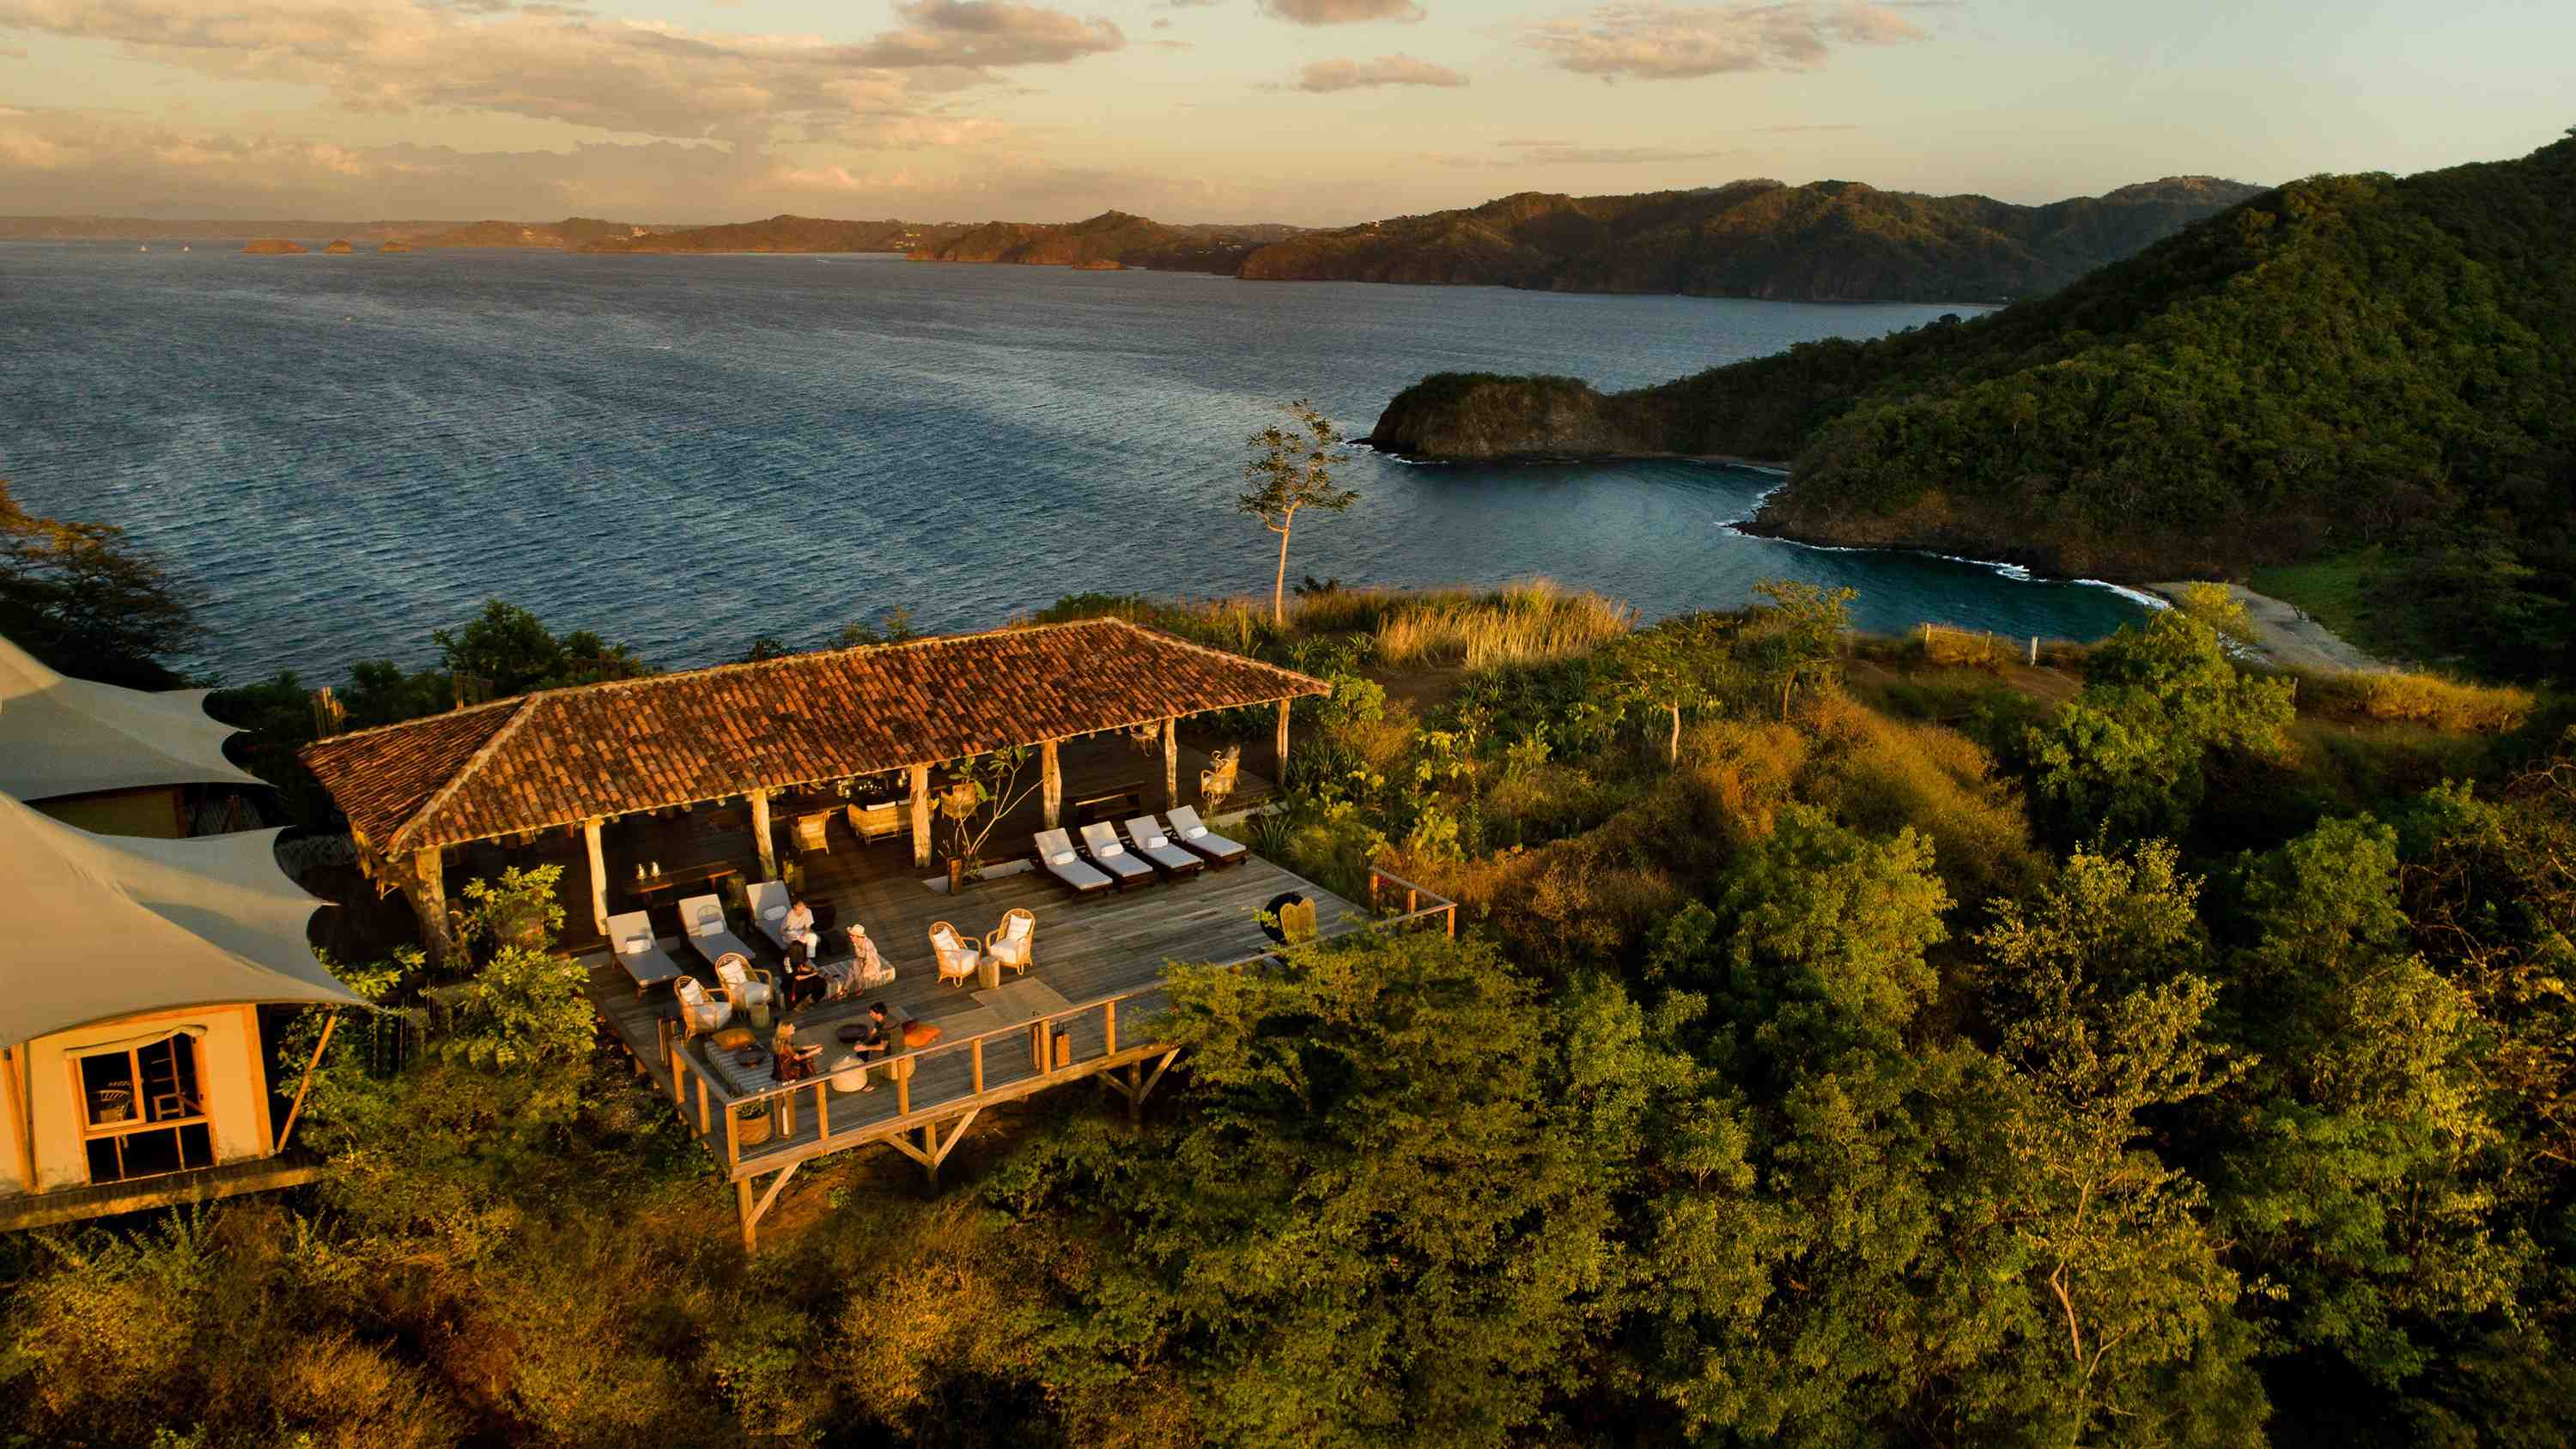 AW² unveils its latest eco-lodge project, Kasiiya Papagayo in Costa Rica